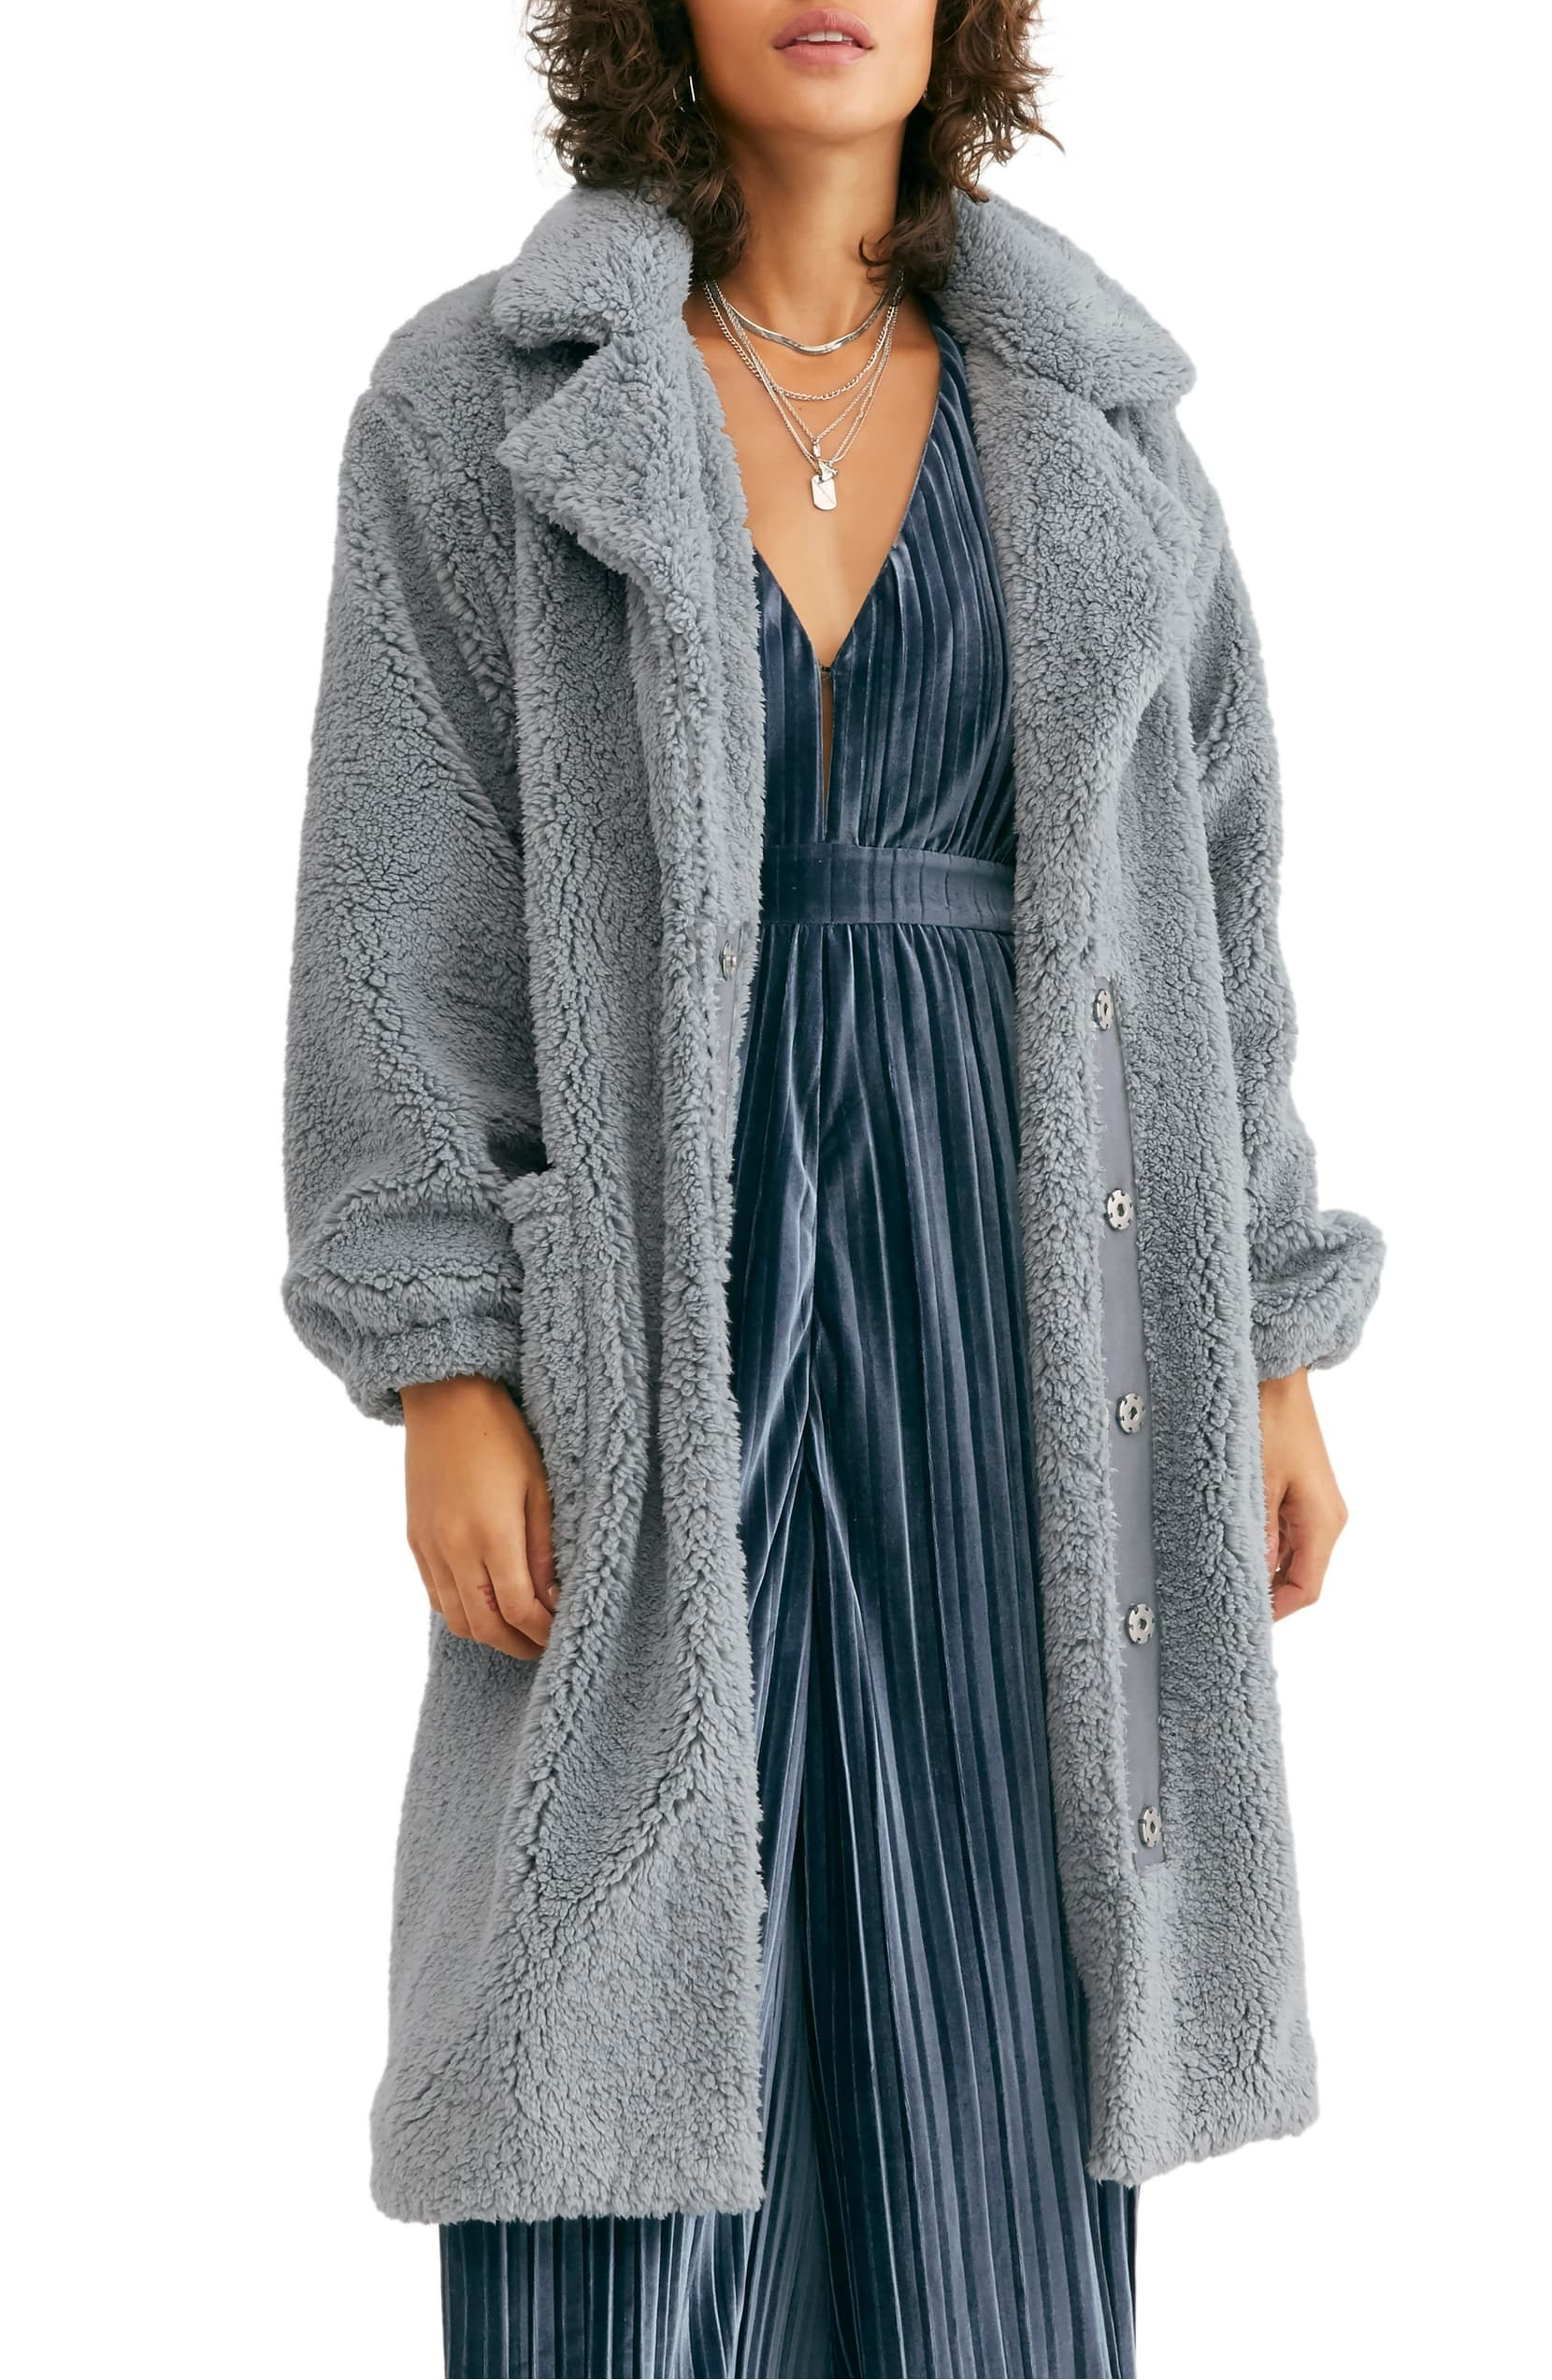 Model wearing the longline coat, featuring high-pile fleece and pockets